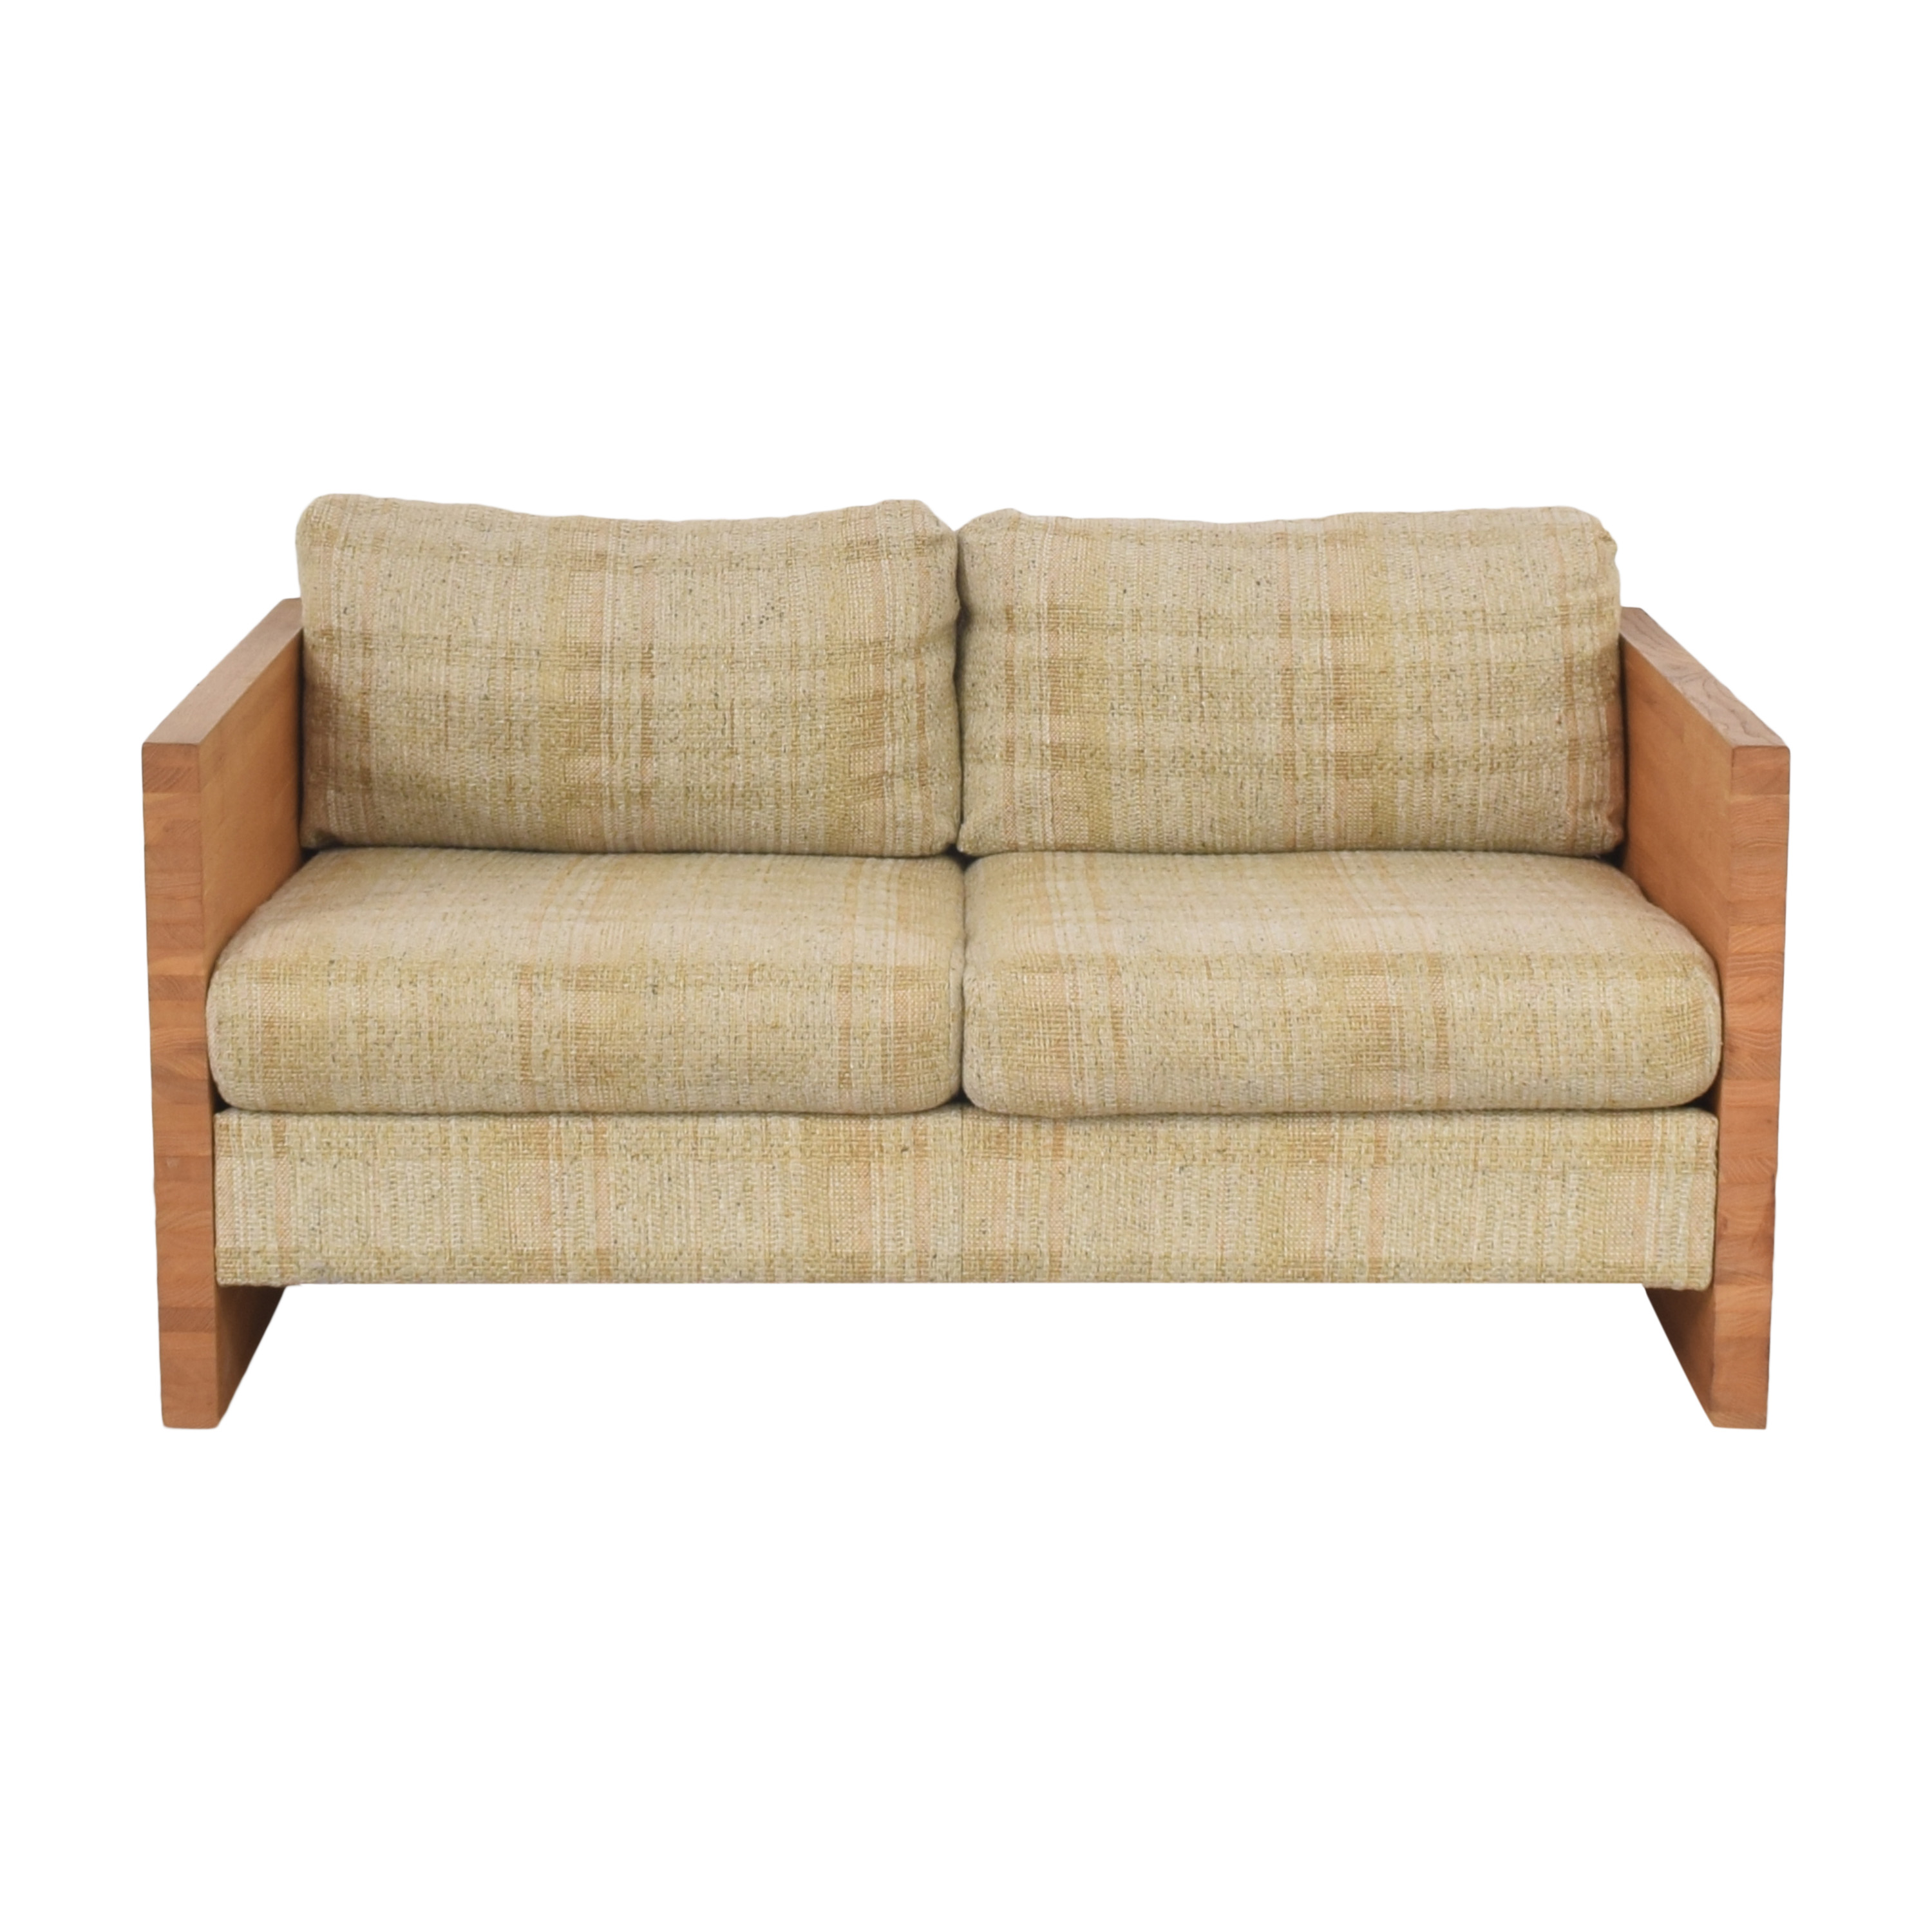 Vintage Upholstered Loveseat second hand